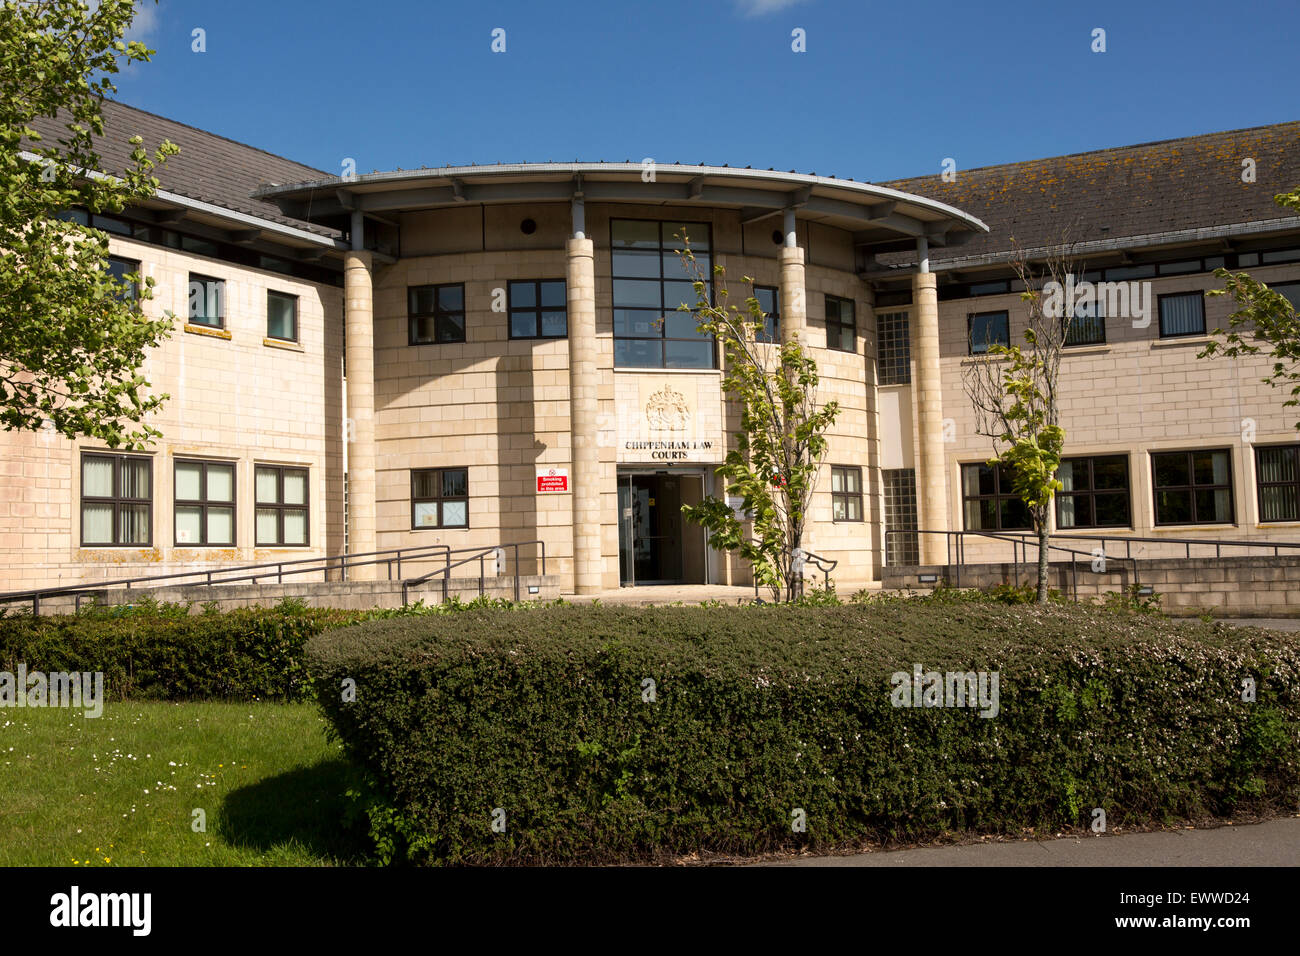 Law Courts in Chippenham, Wiltshire, England, UK - Stock Image